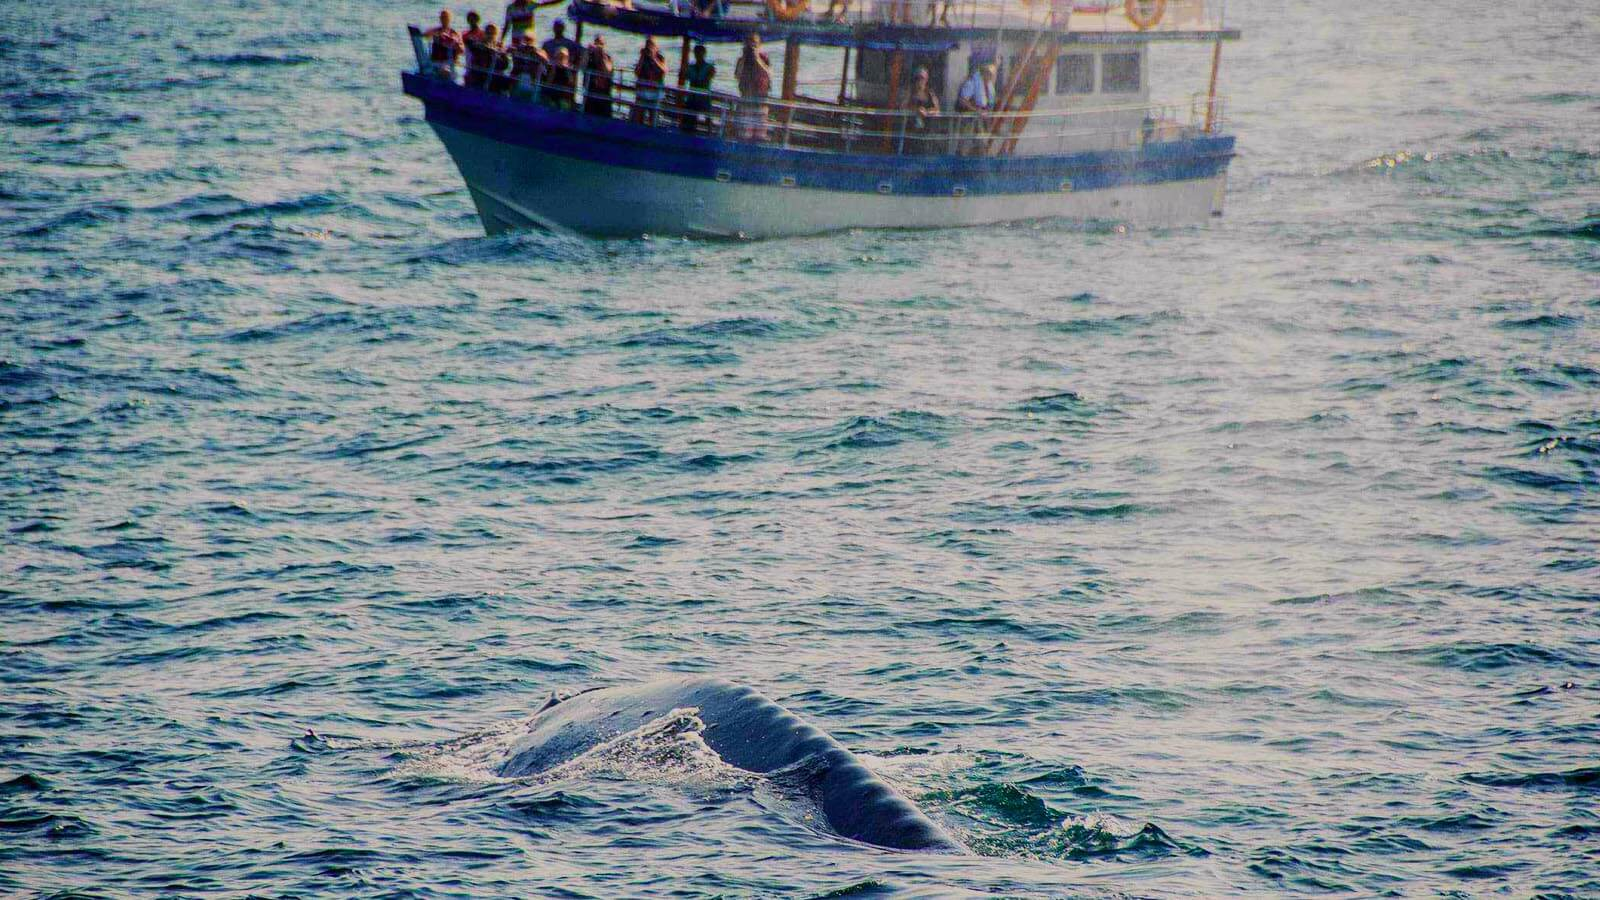 Whale and Dolphin Watching Sri Lanka